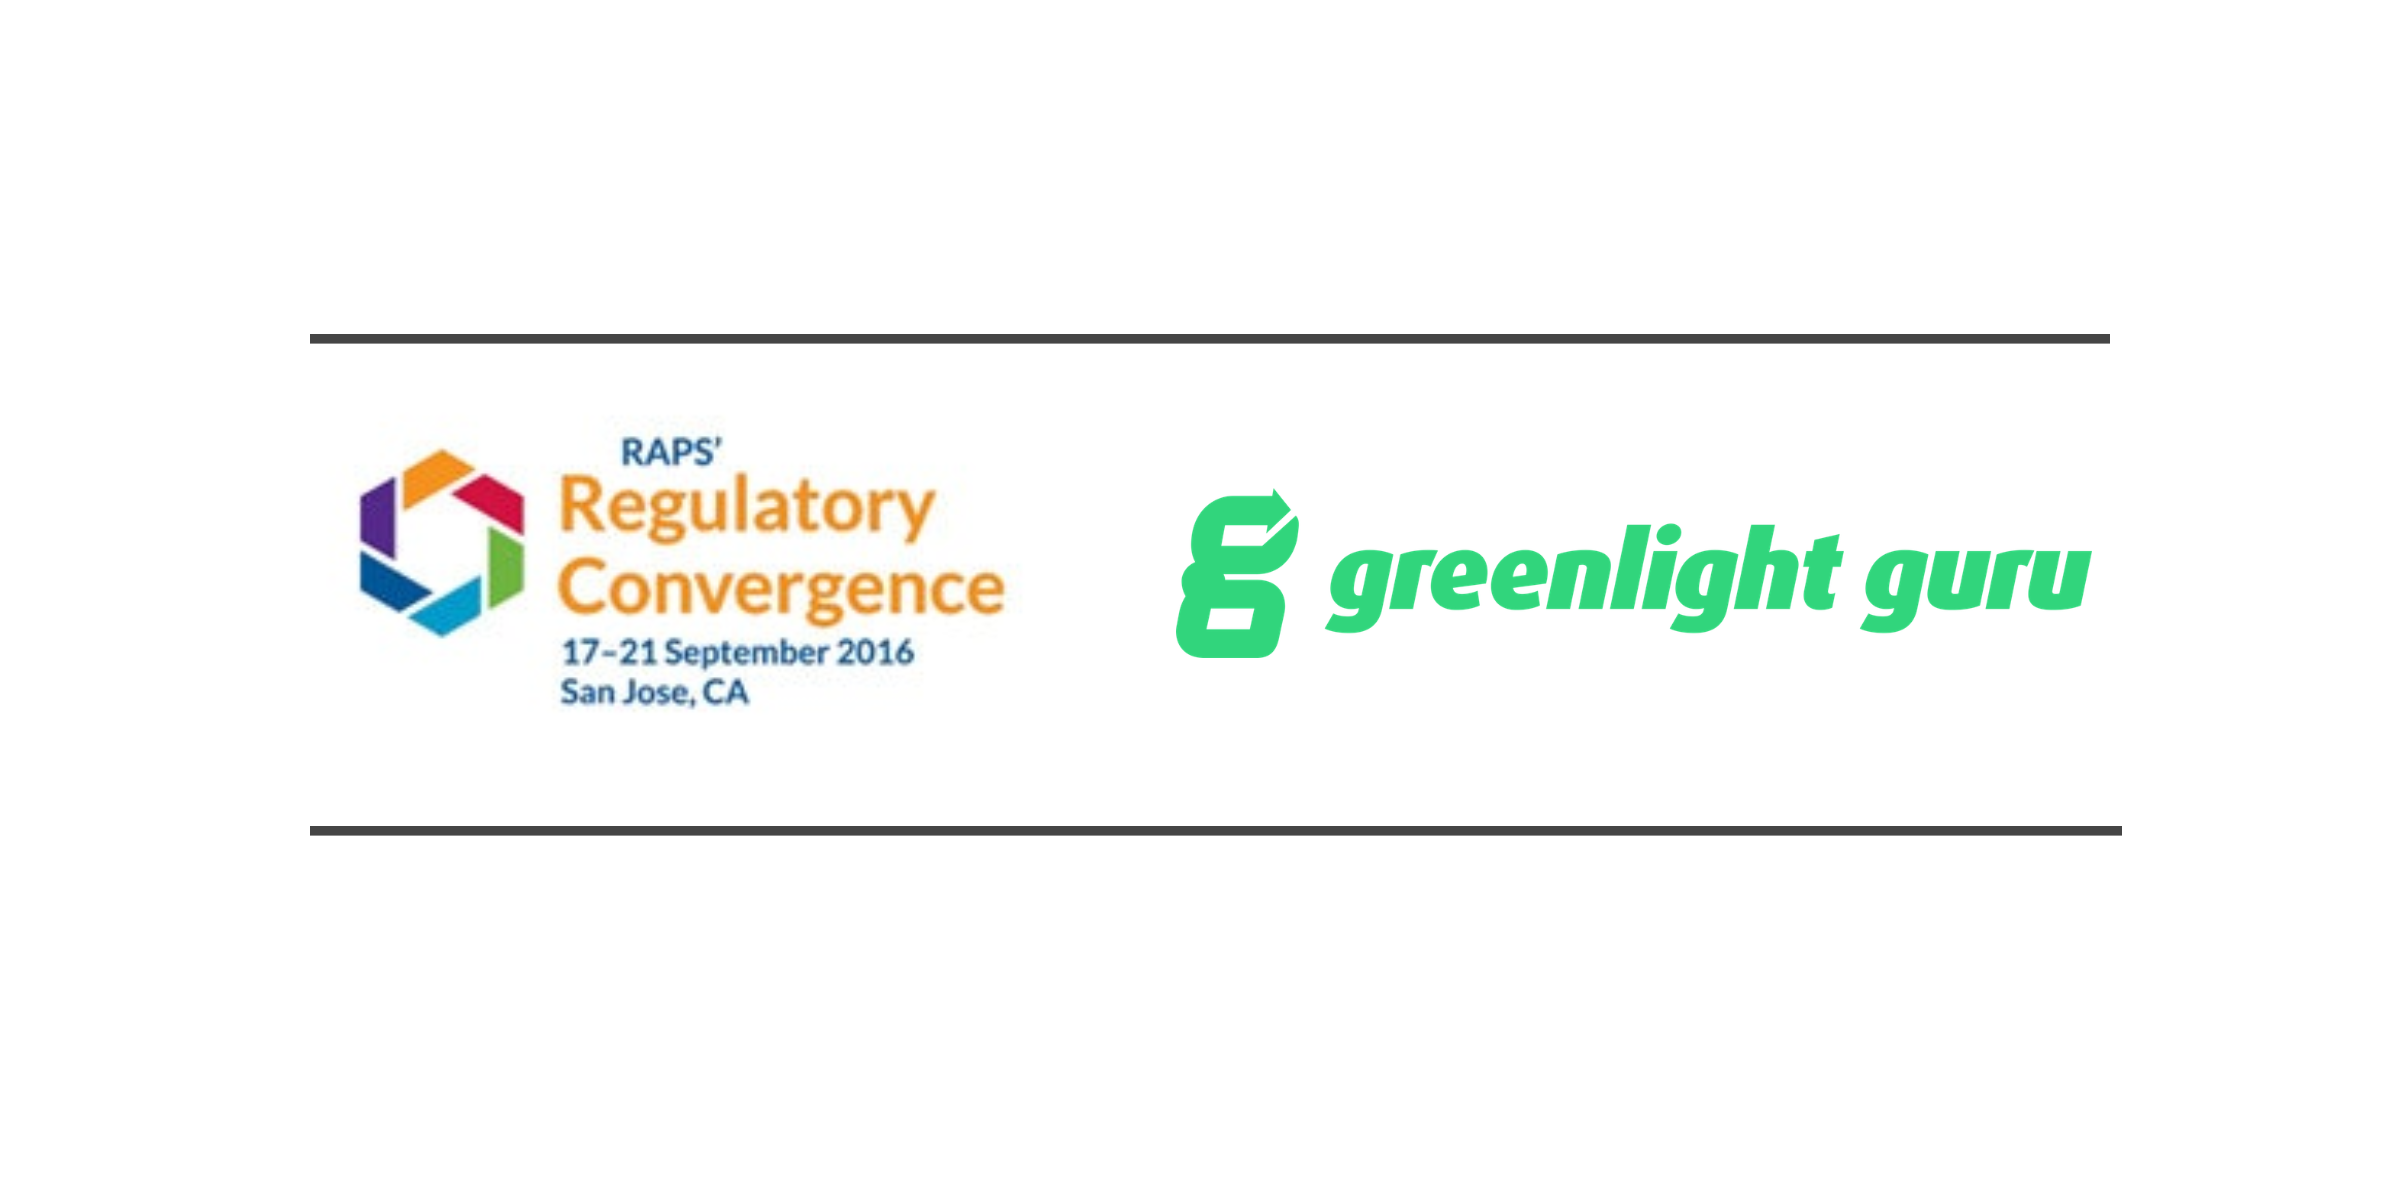 greenlight guru Invited to Host Two Workshop Sessions at RAPS Convergence San Jose 2016 - Featured Image